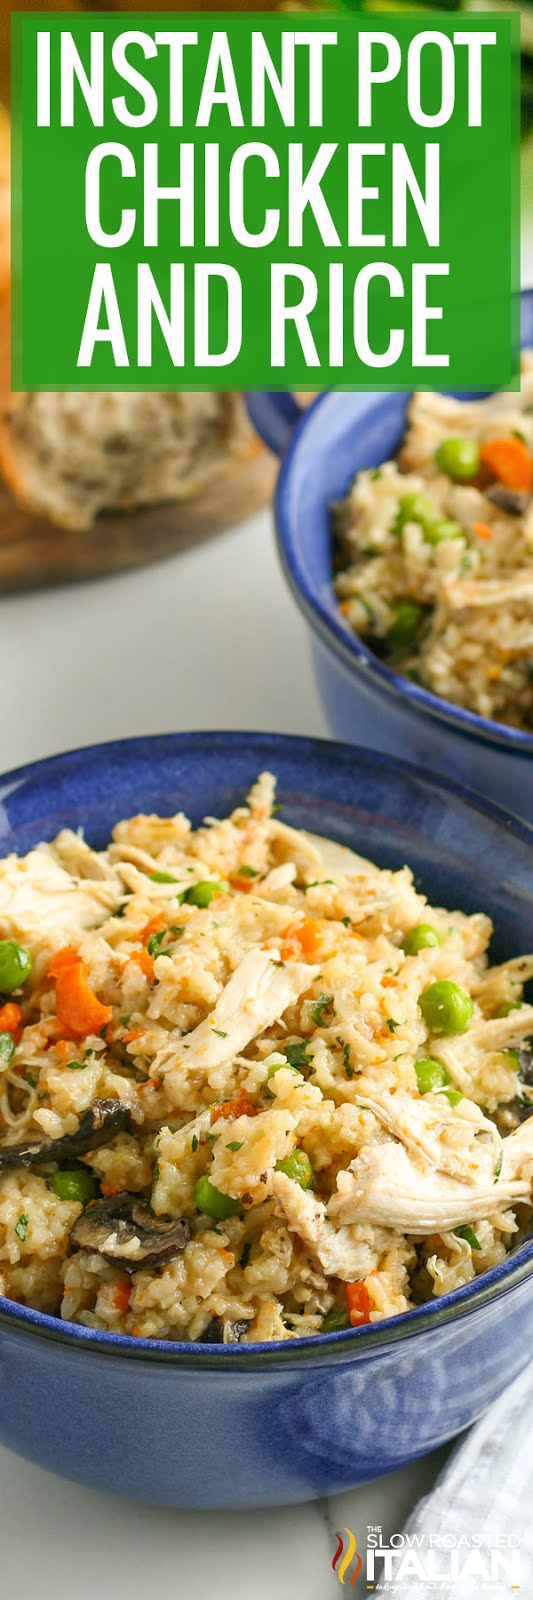 Instant Pot chicken and rice in bowls